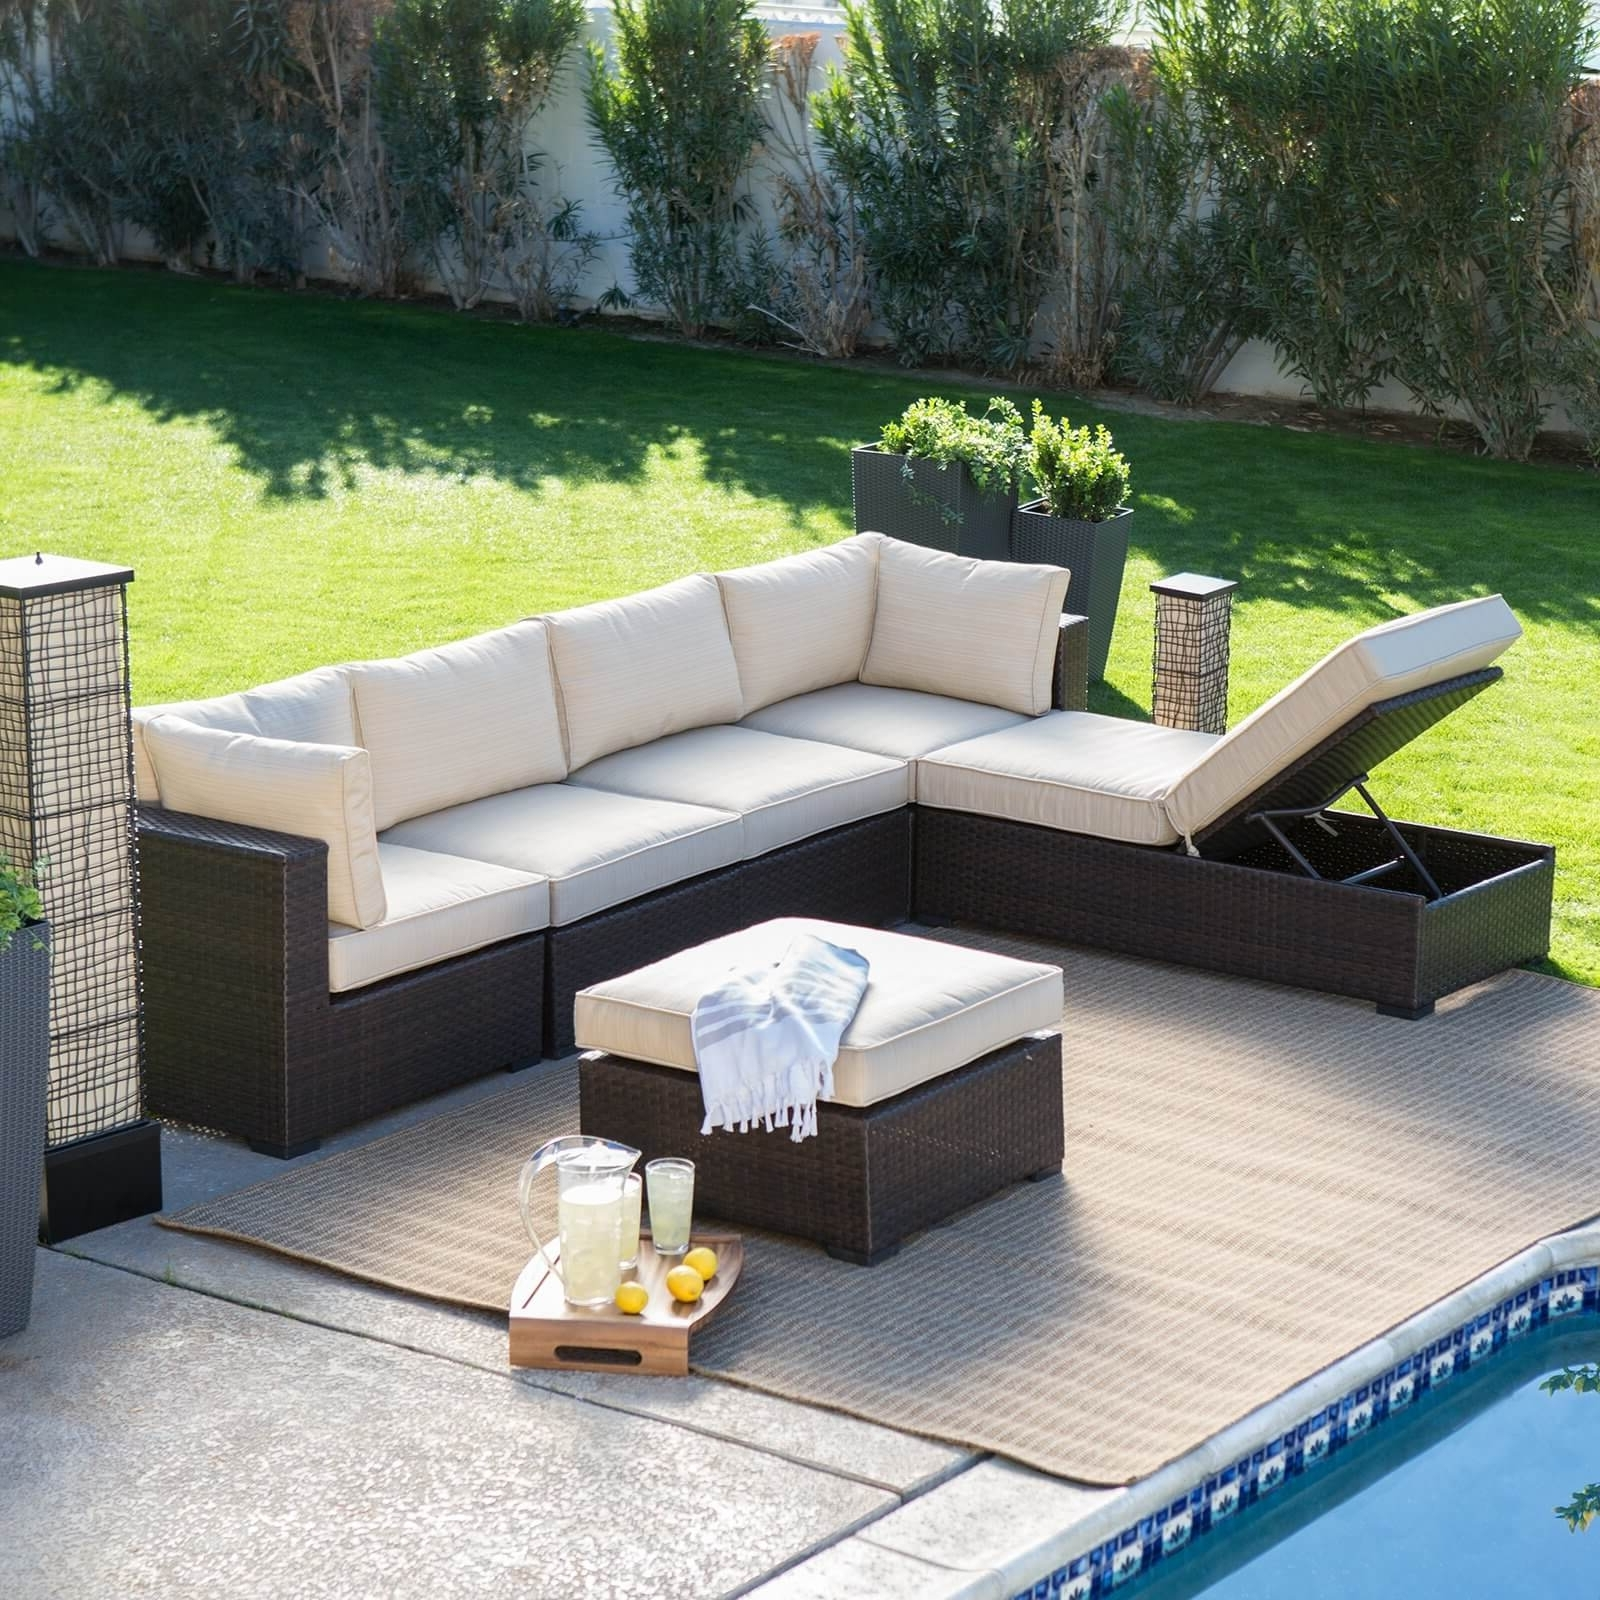 Latest Edmonton Patio Conversation Sets Throughout Patio & Garden : Patio Furniture Sectional Clips Patio Furniture (View 18 of 20)